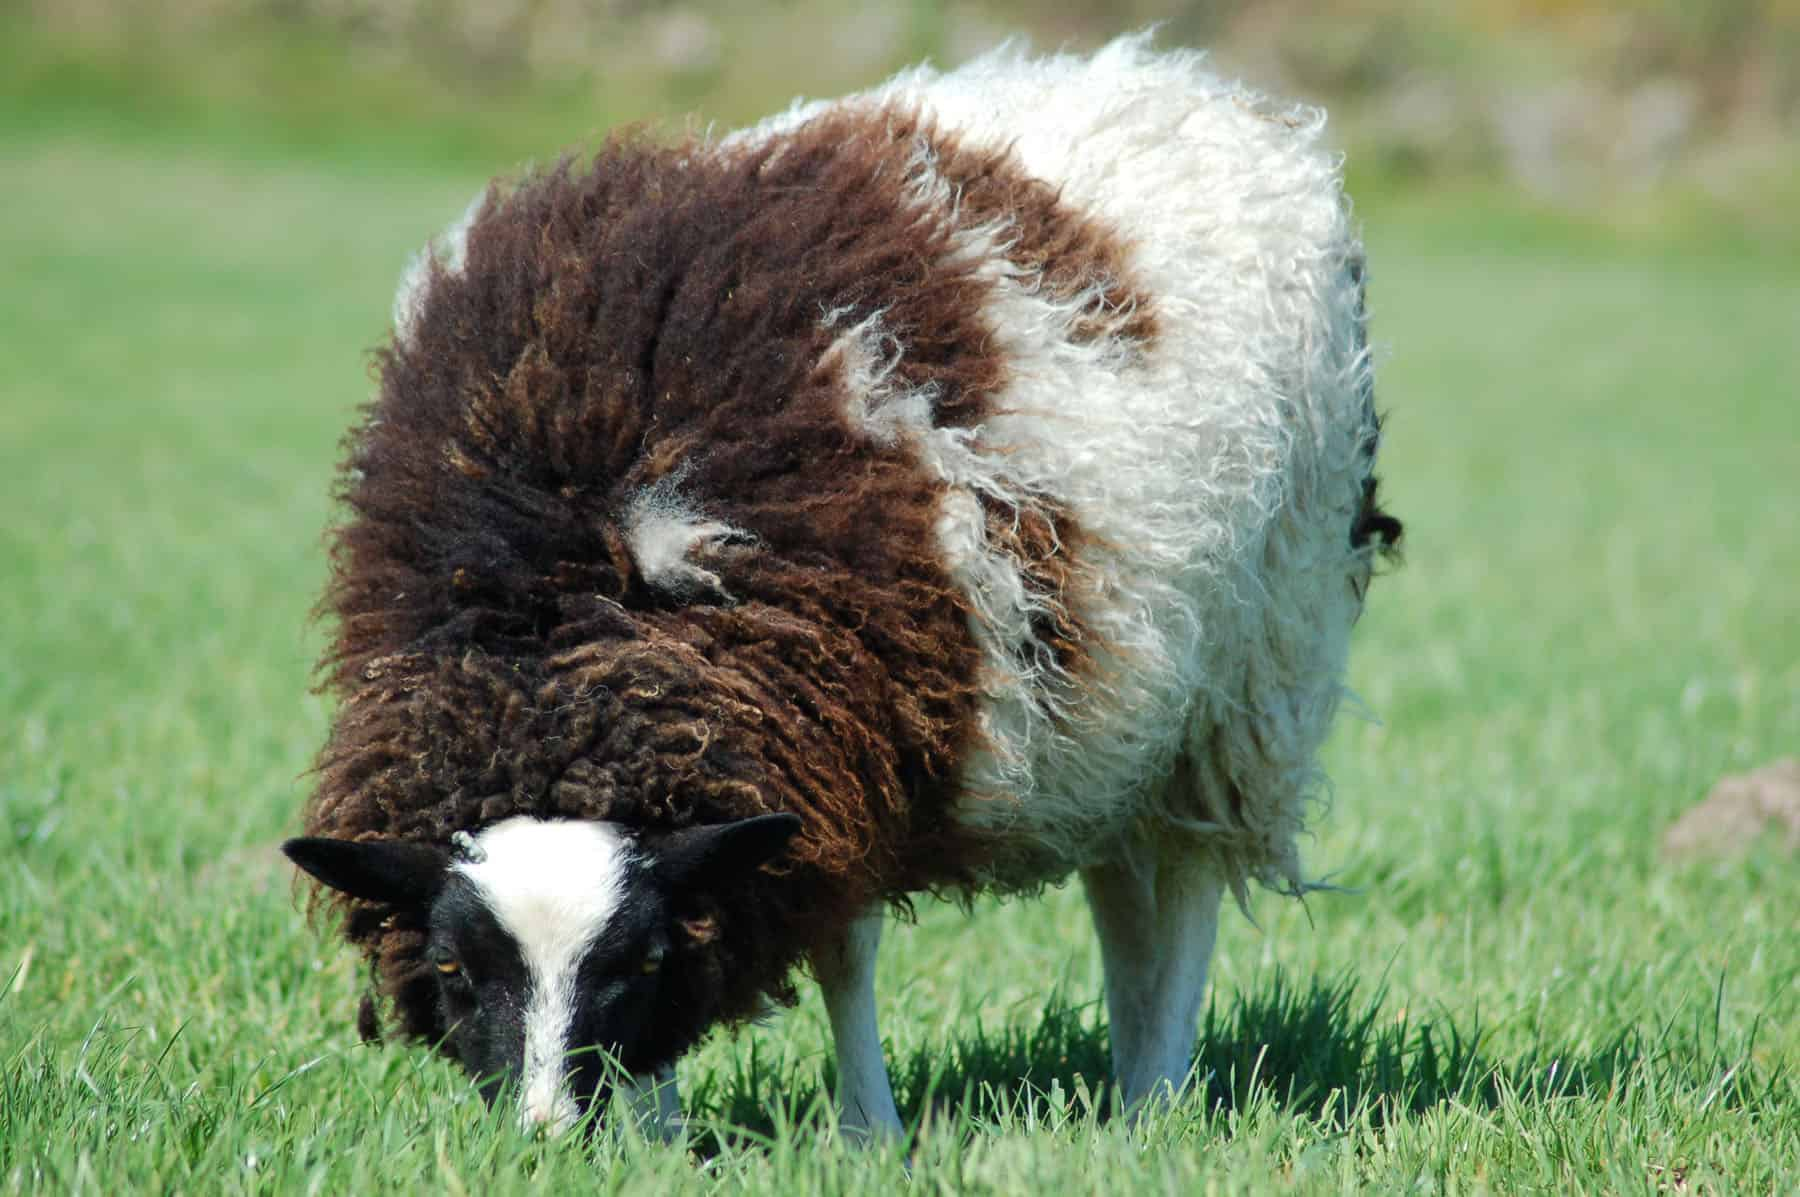 patchwork sheep phlox shearling black white soay shetland jacob cross sheep